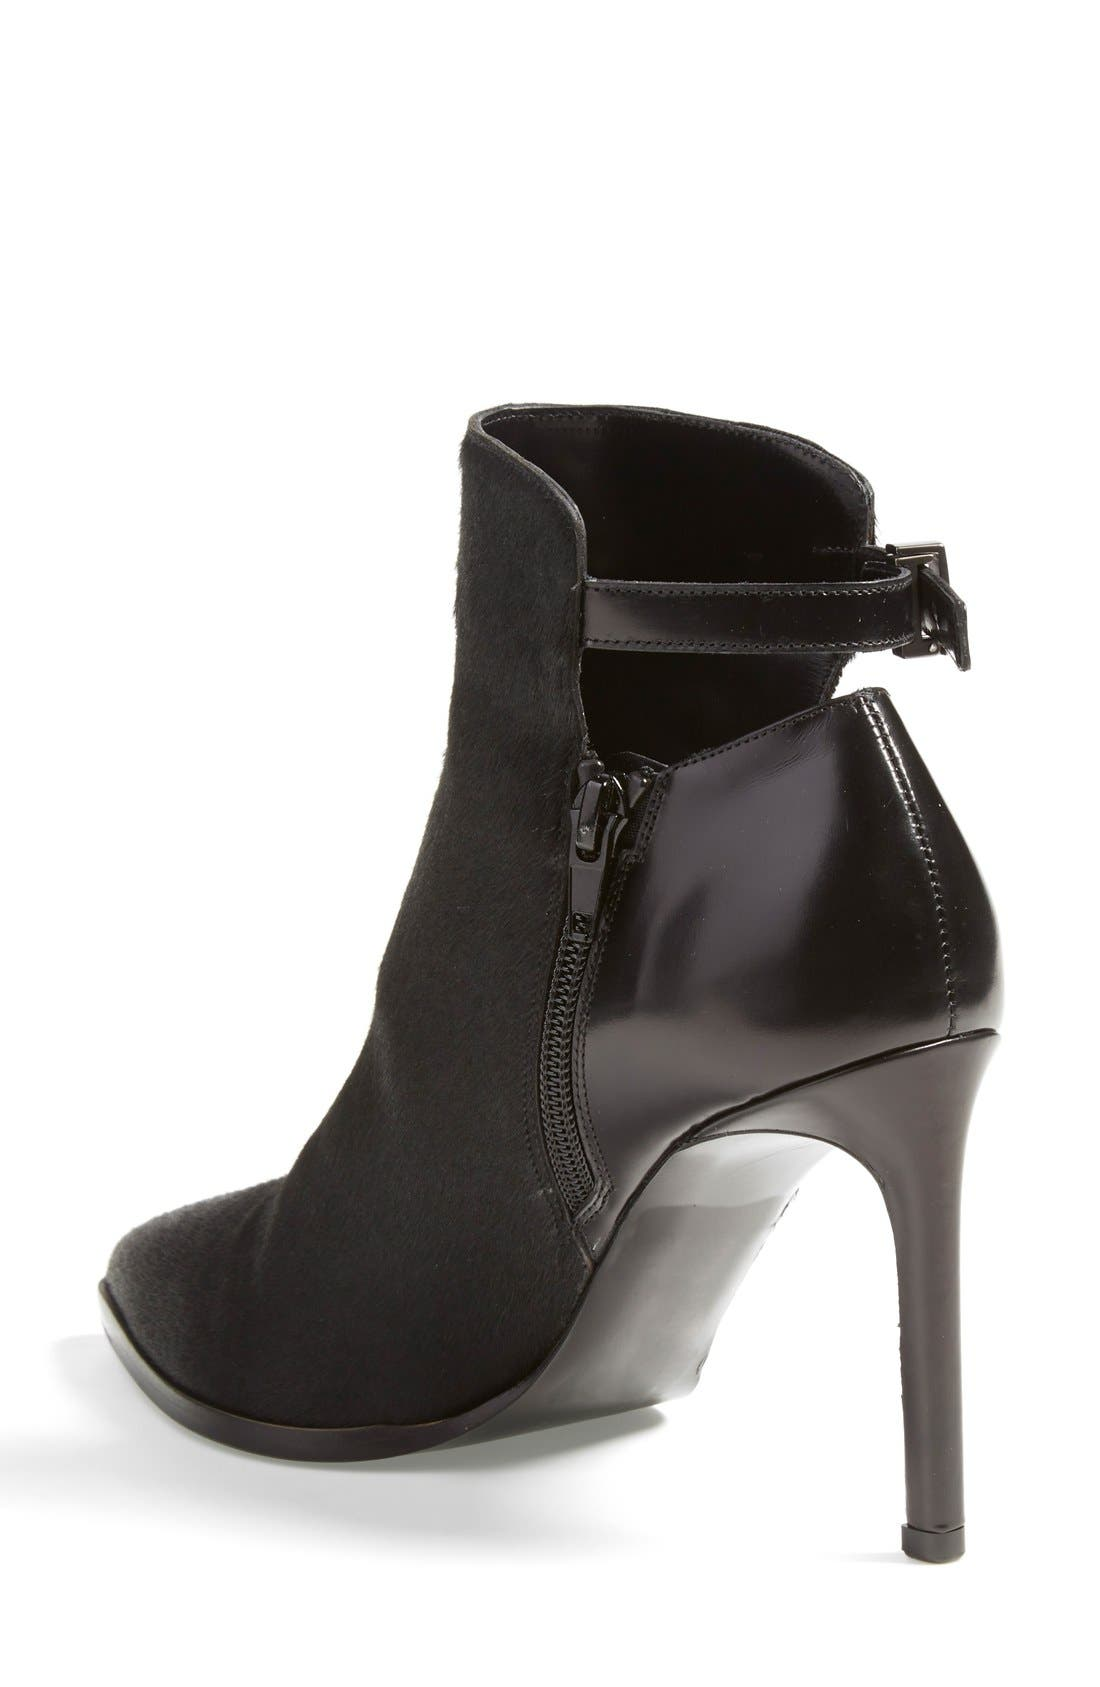 'Calla' Leather & Calf Hair Bootie,                             Alternate thumbnail 2, color,                             Black